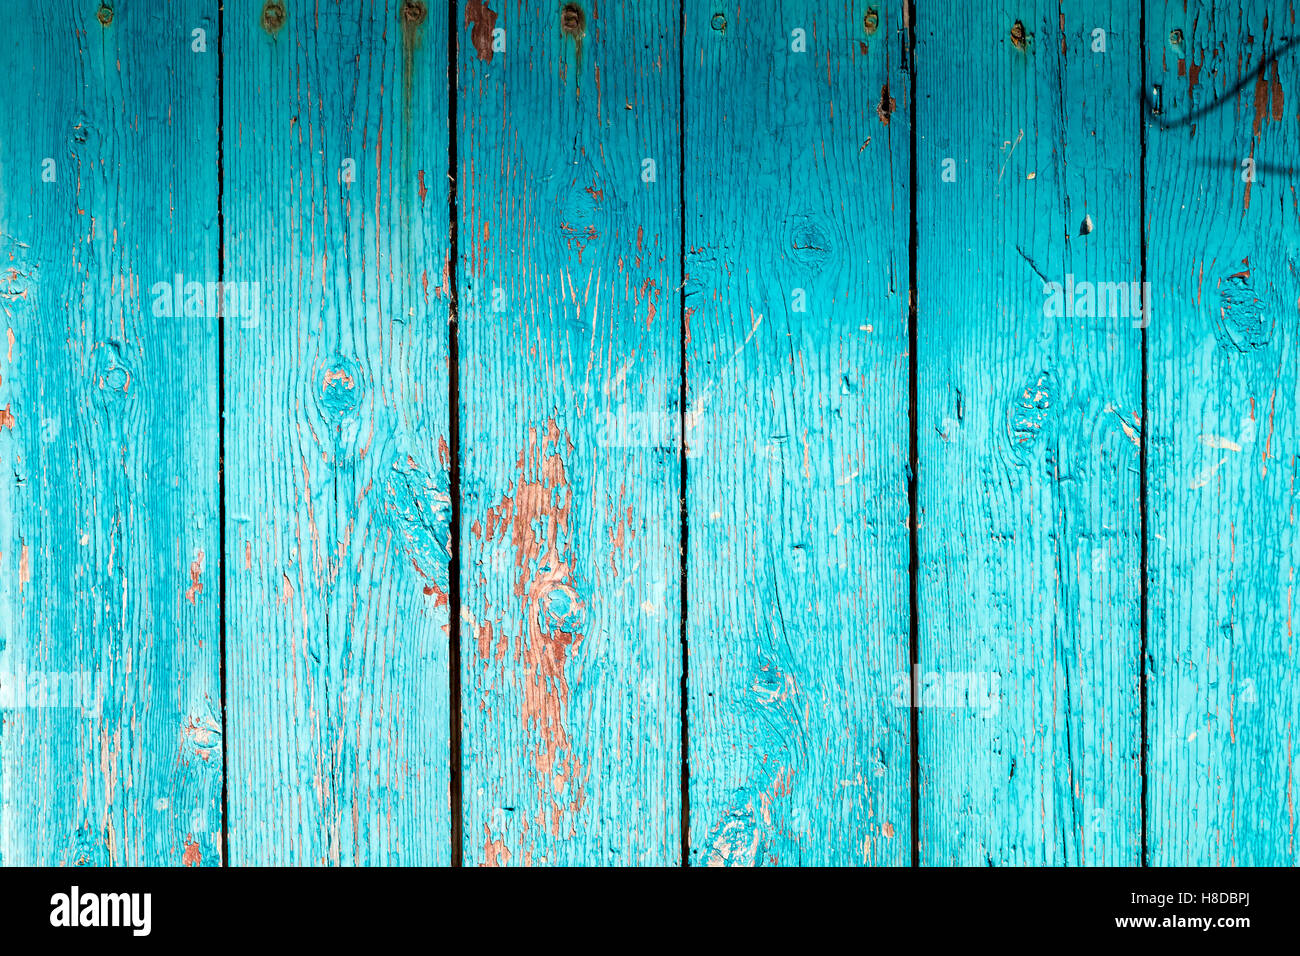 background vertical wooden planks with vintage turquoise paint - Stock Image